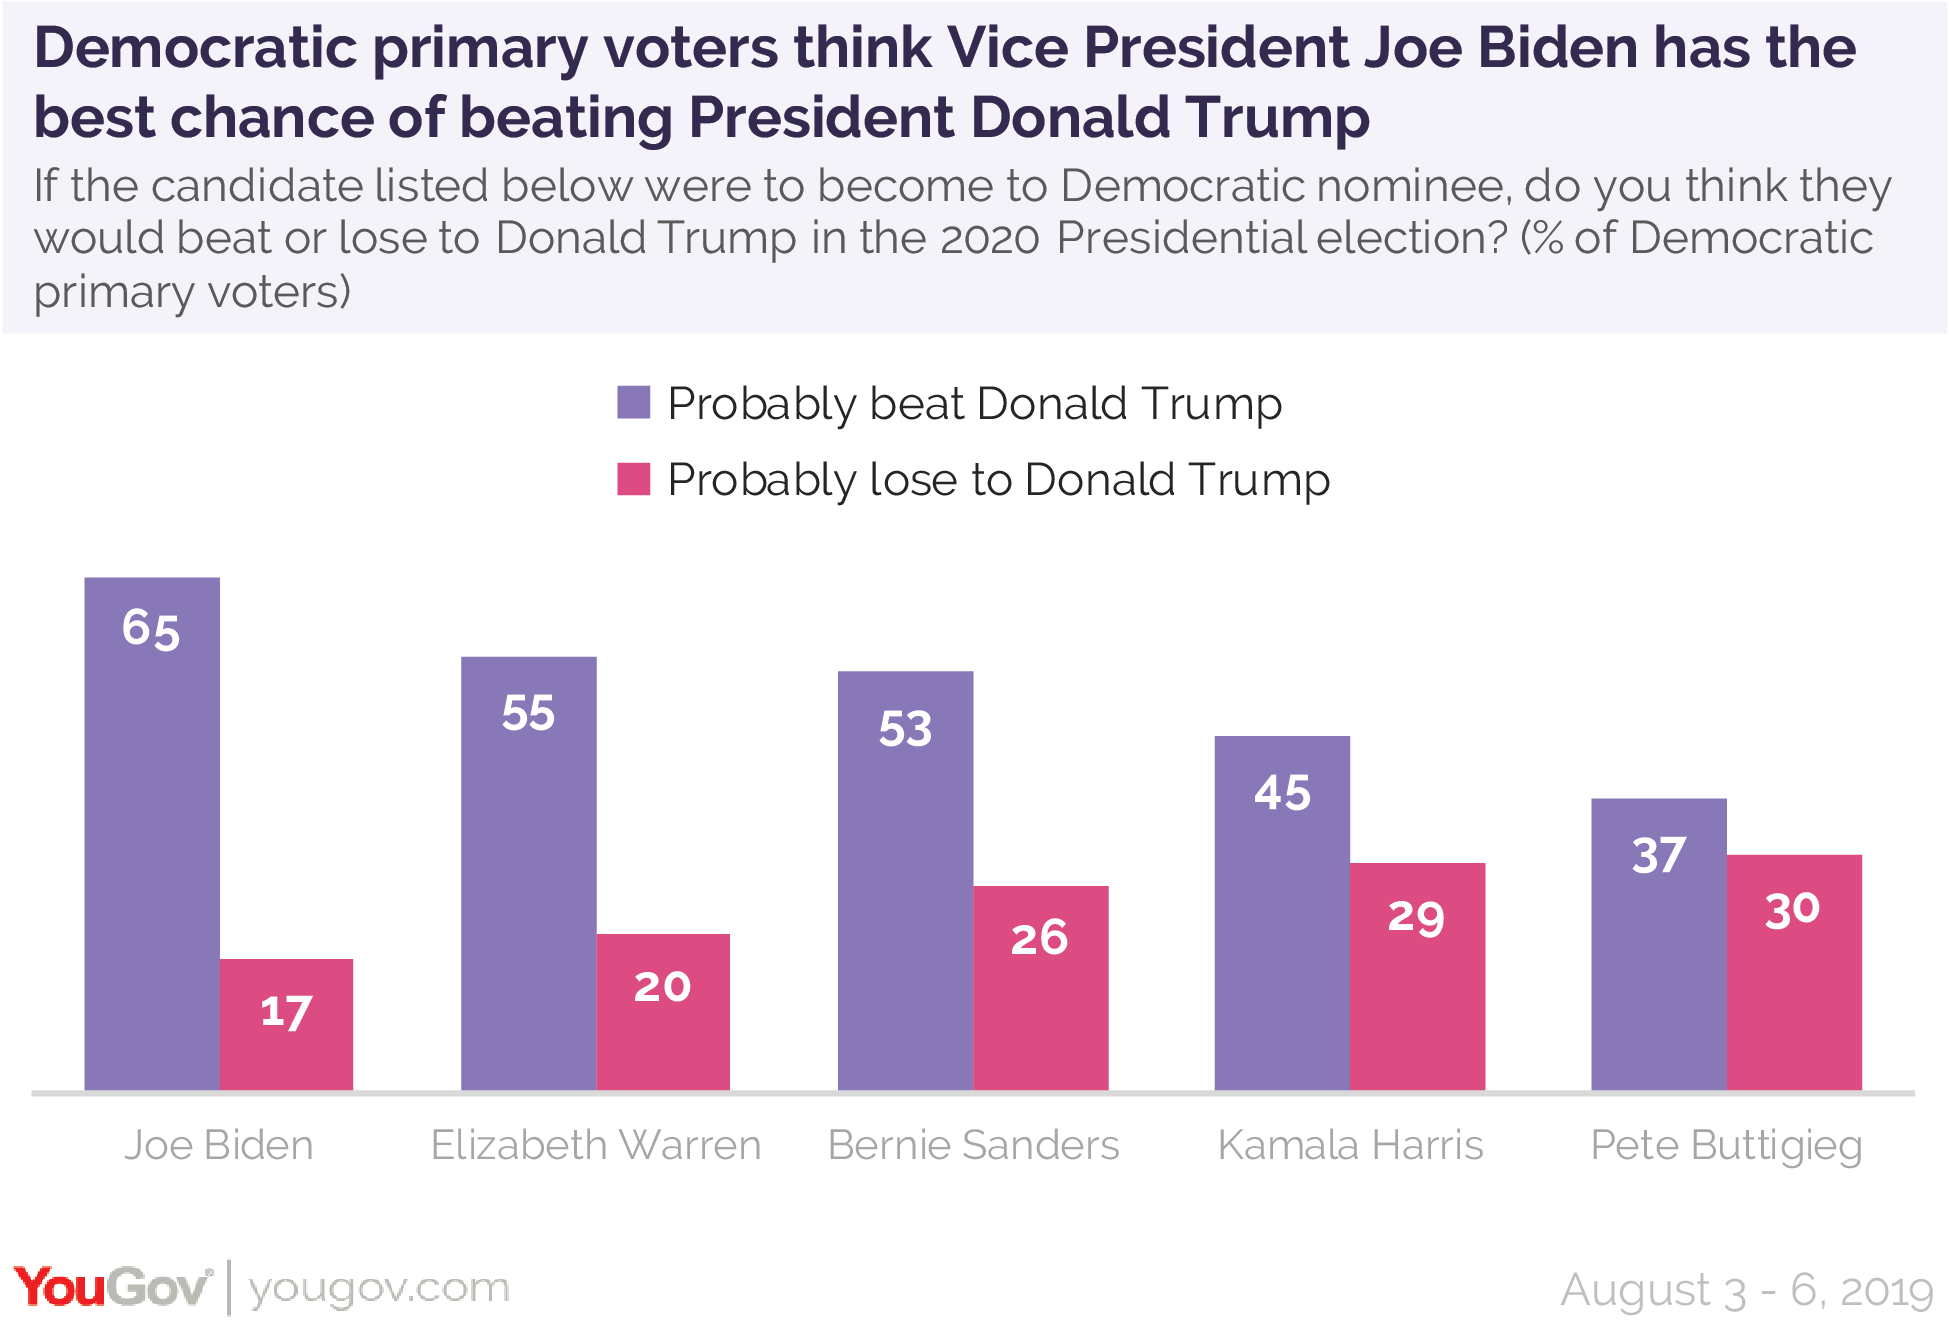 Democratic primary voters think Vice President Joe Biden has the best chance of beating President Donald Trump